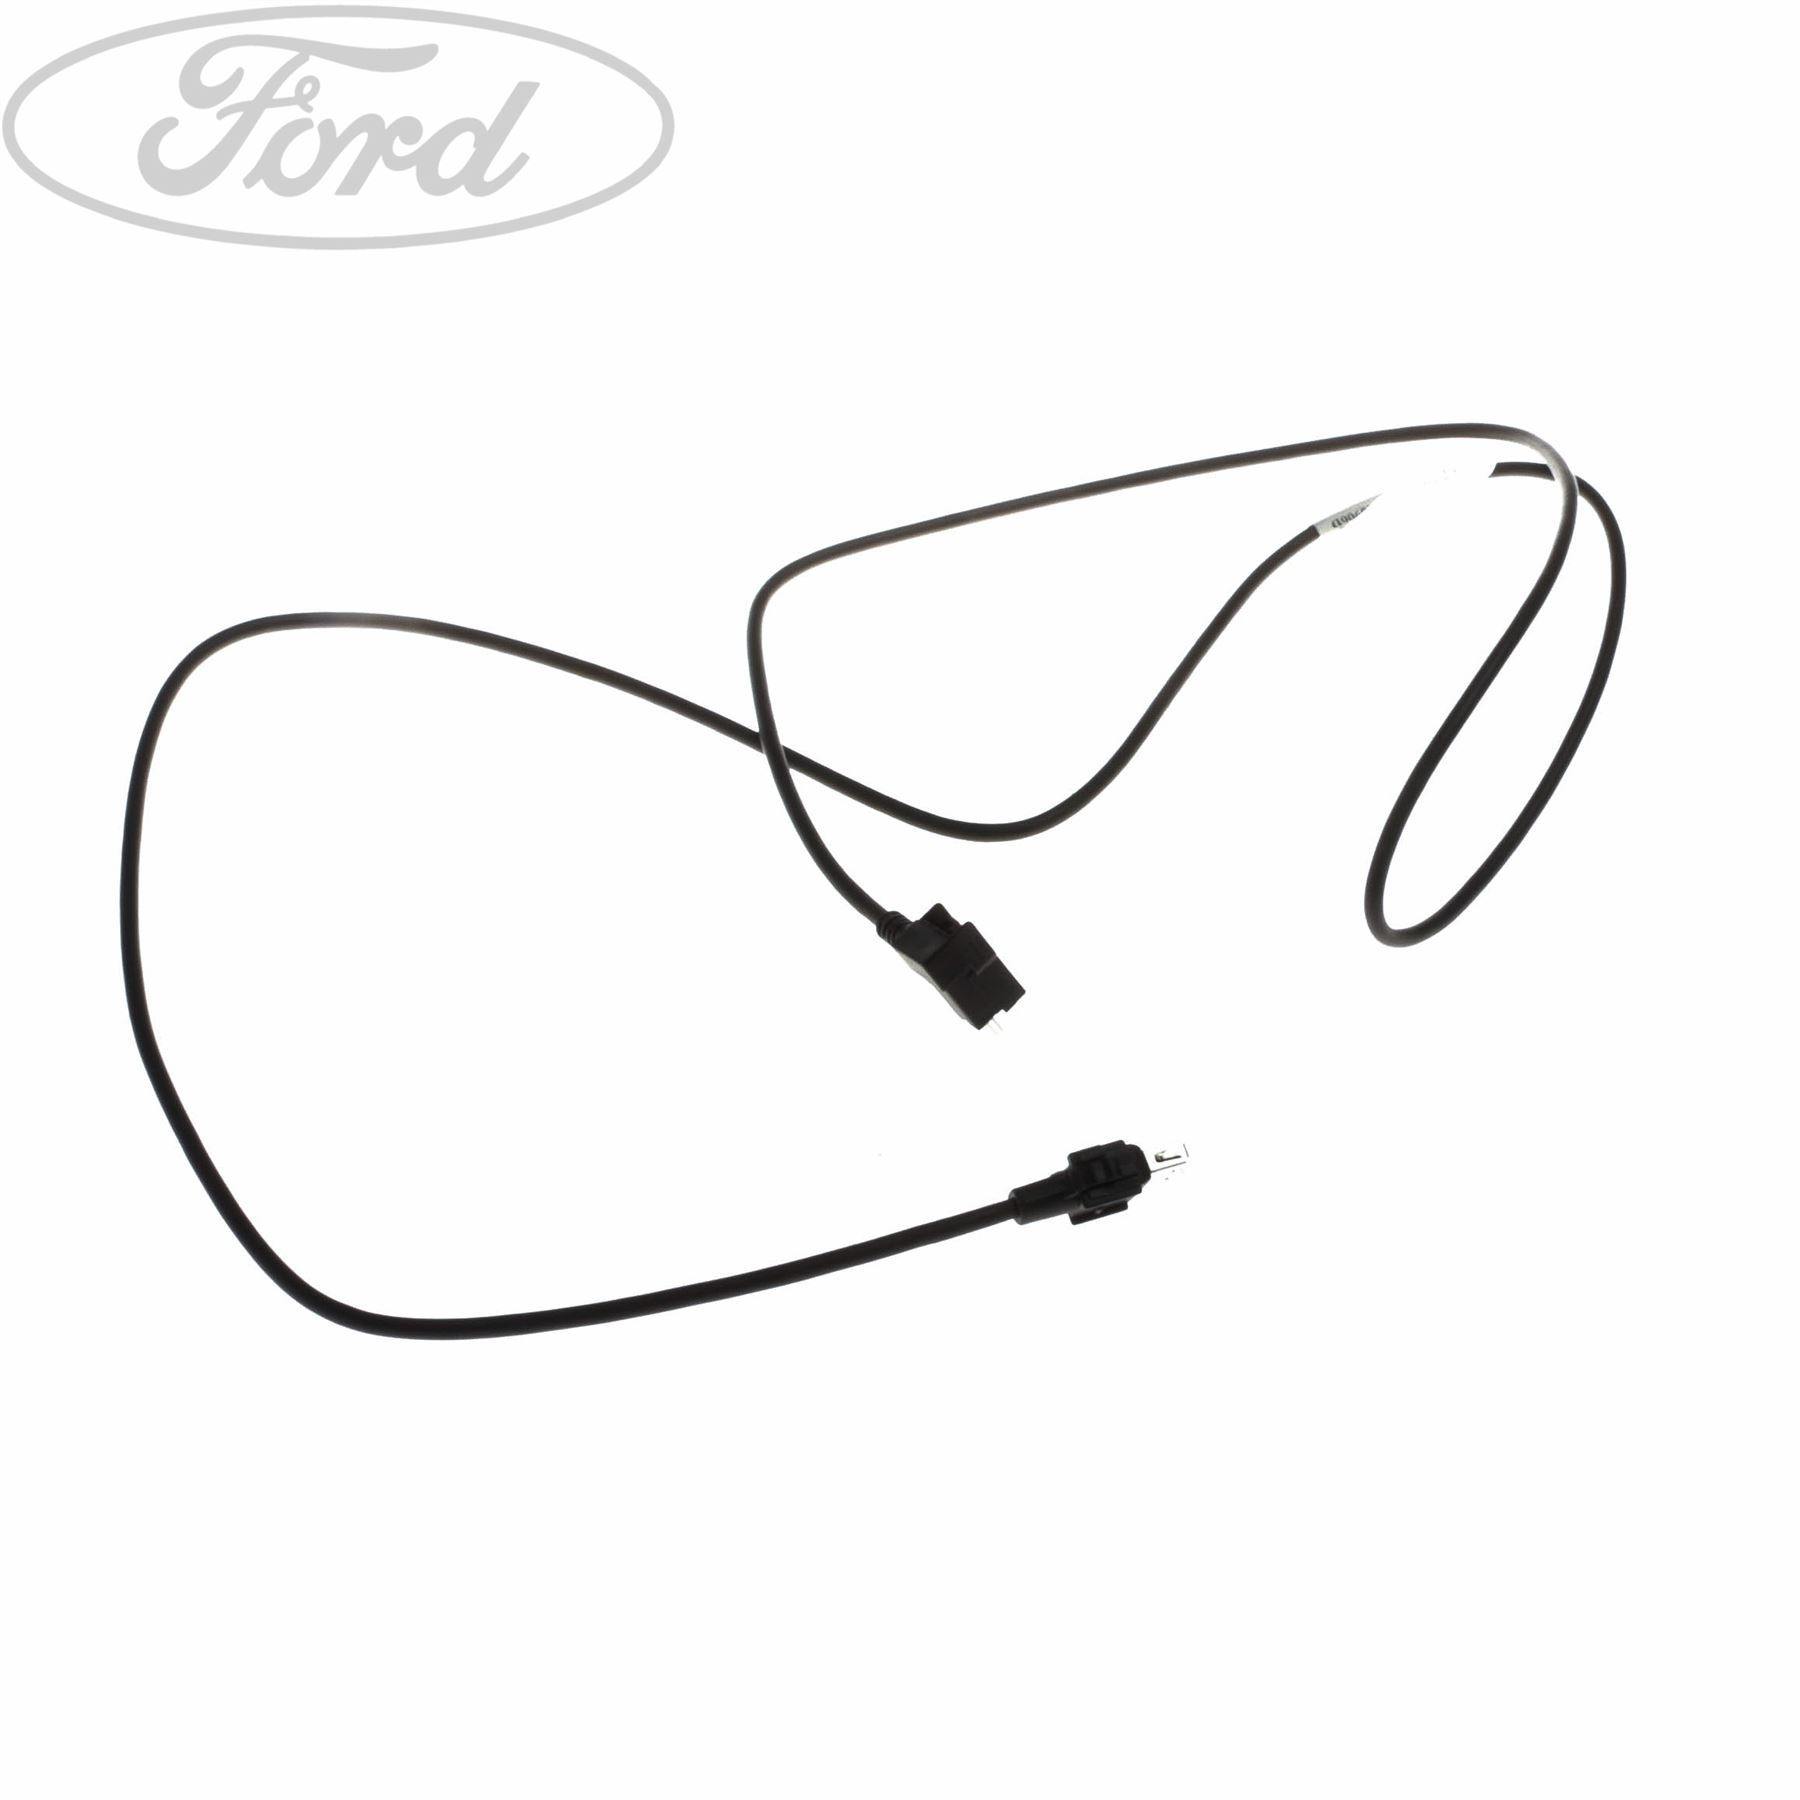 Genuine Ford Fiesta Mk7 Dashboard Usb Wire Cable